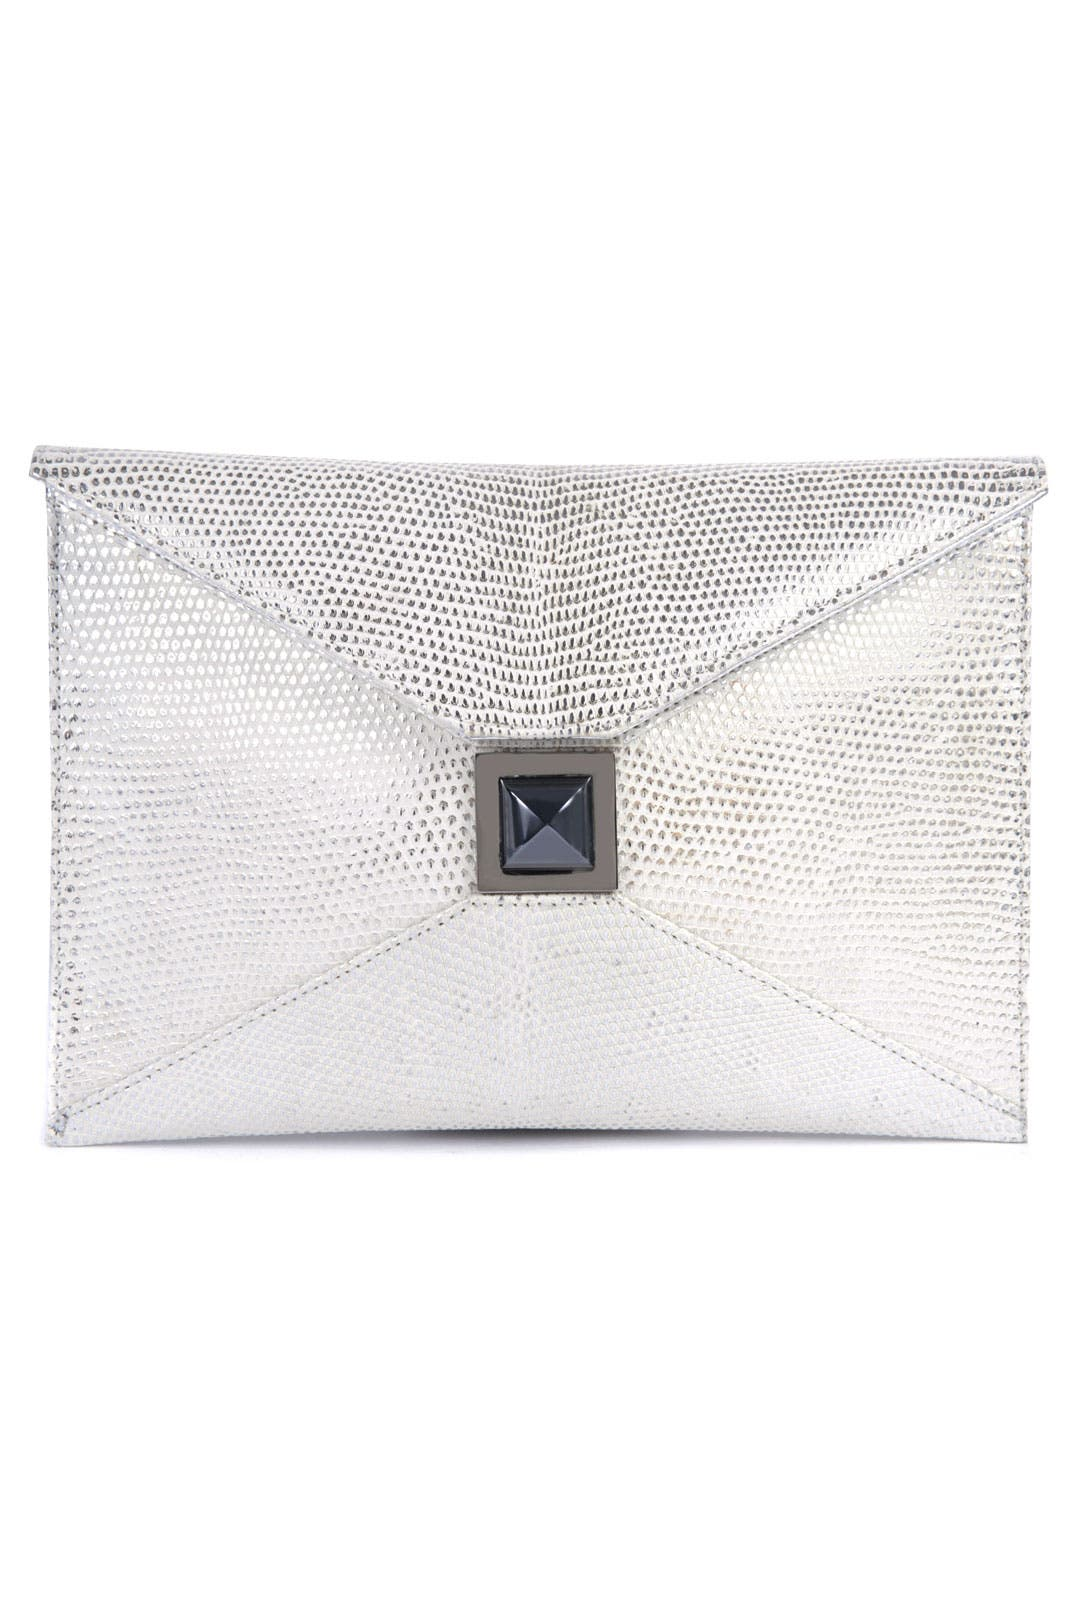 Snow Queen Clutch by Kara Ross